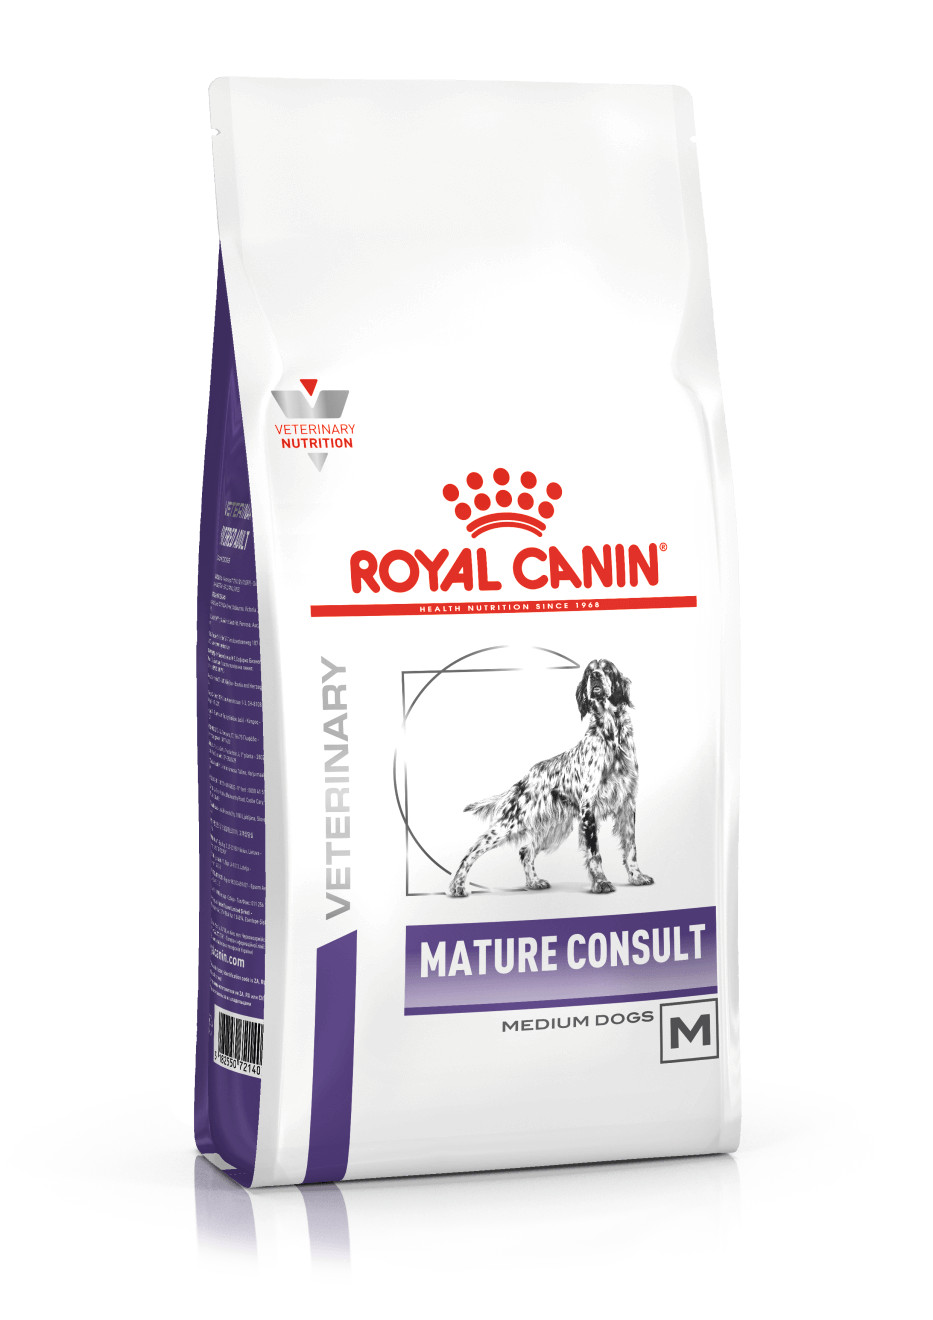 Royal Canin Veterinary Mature Consult Medium Dogs pour chien